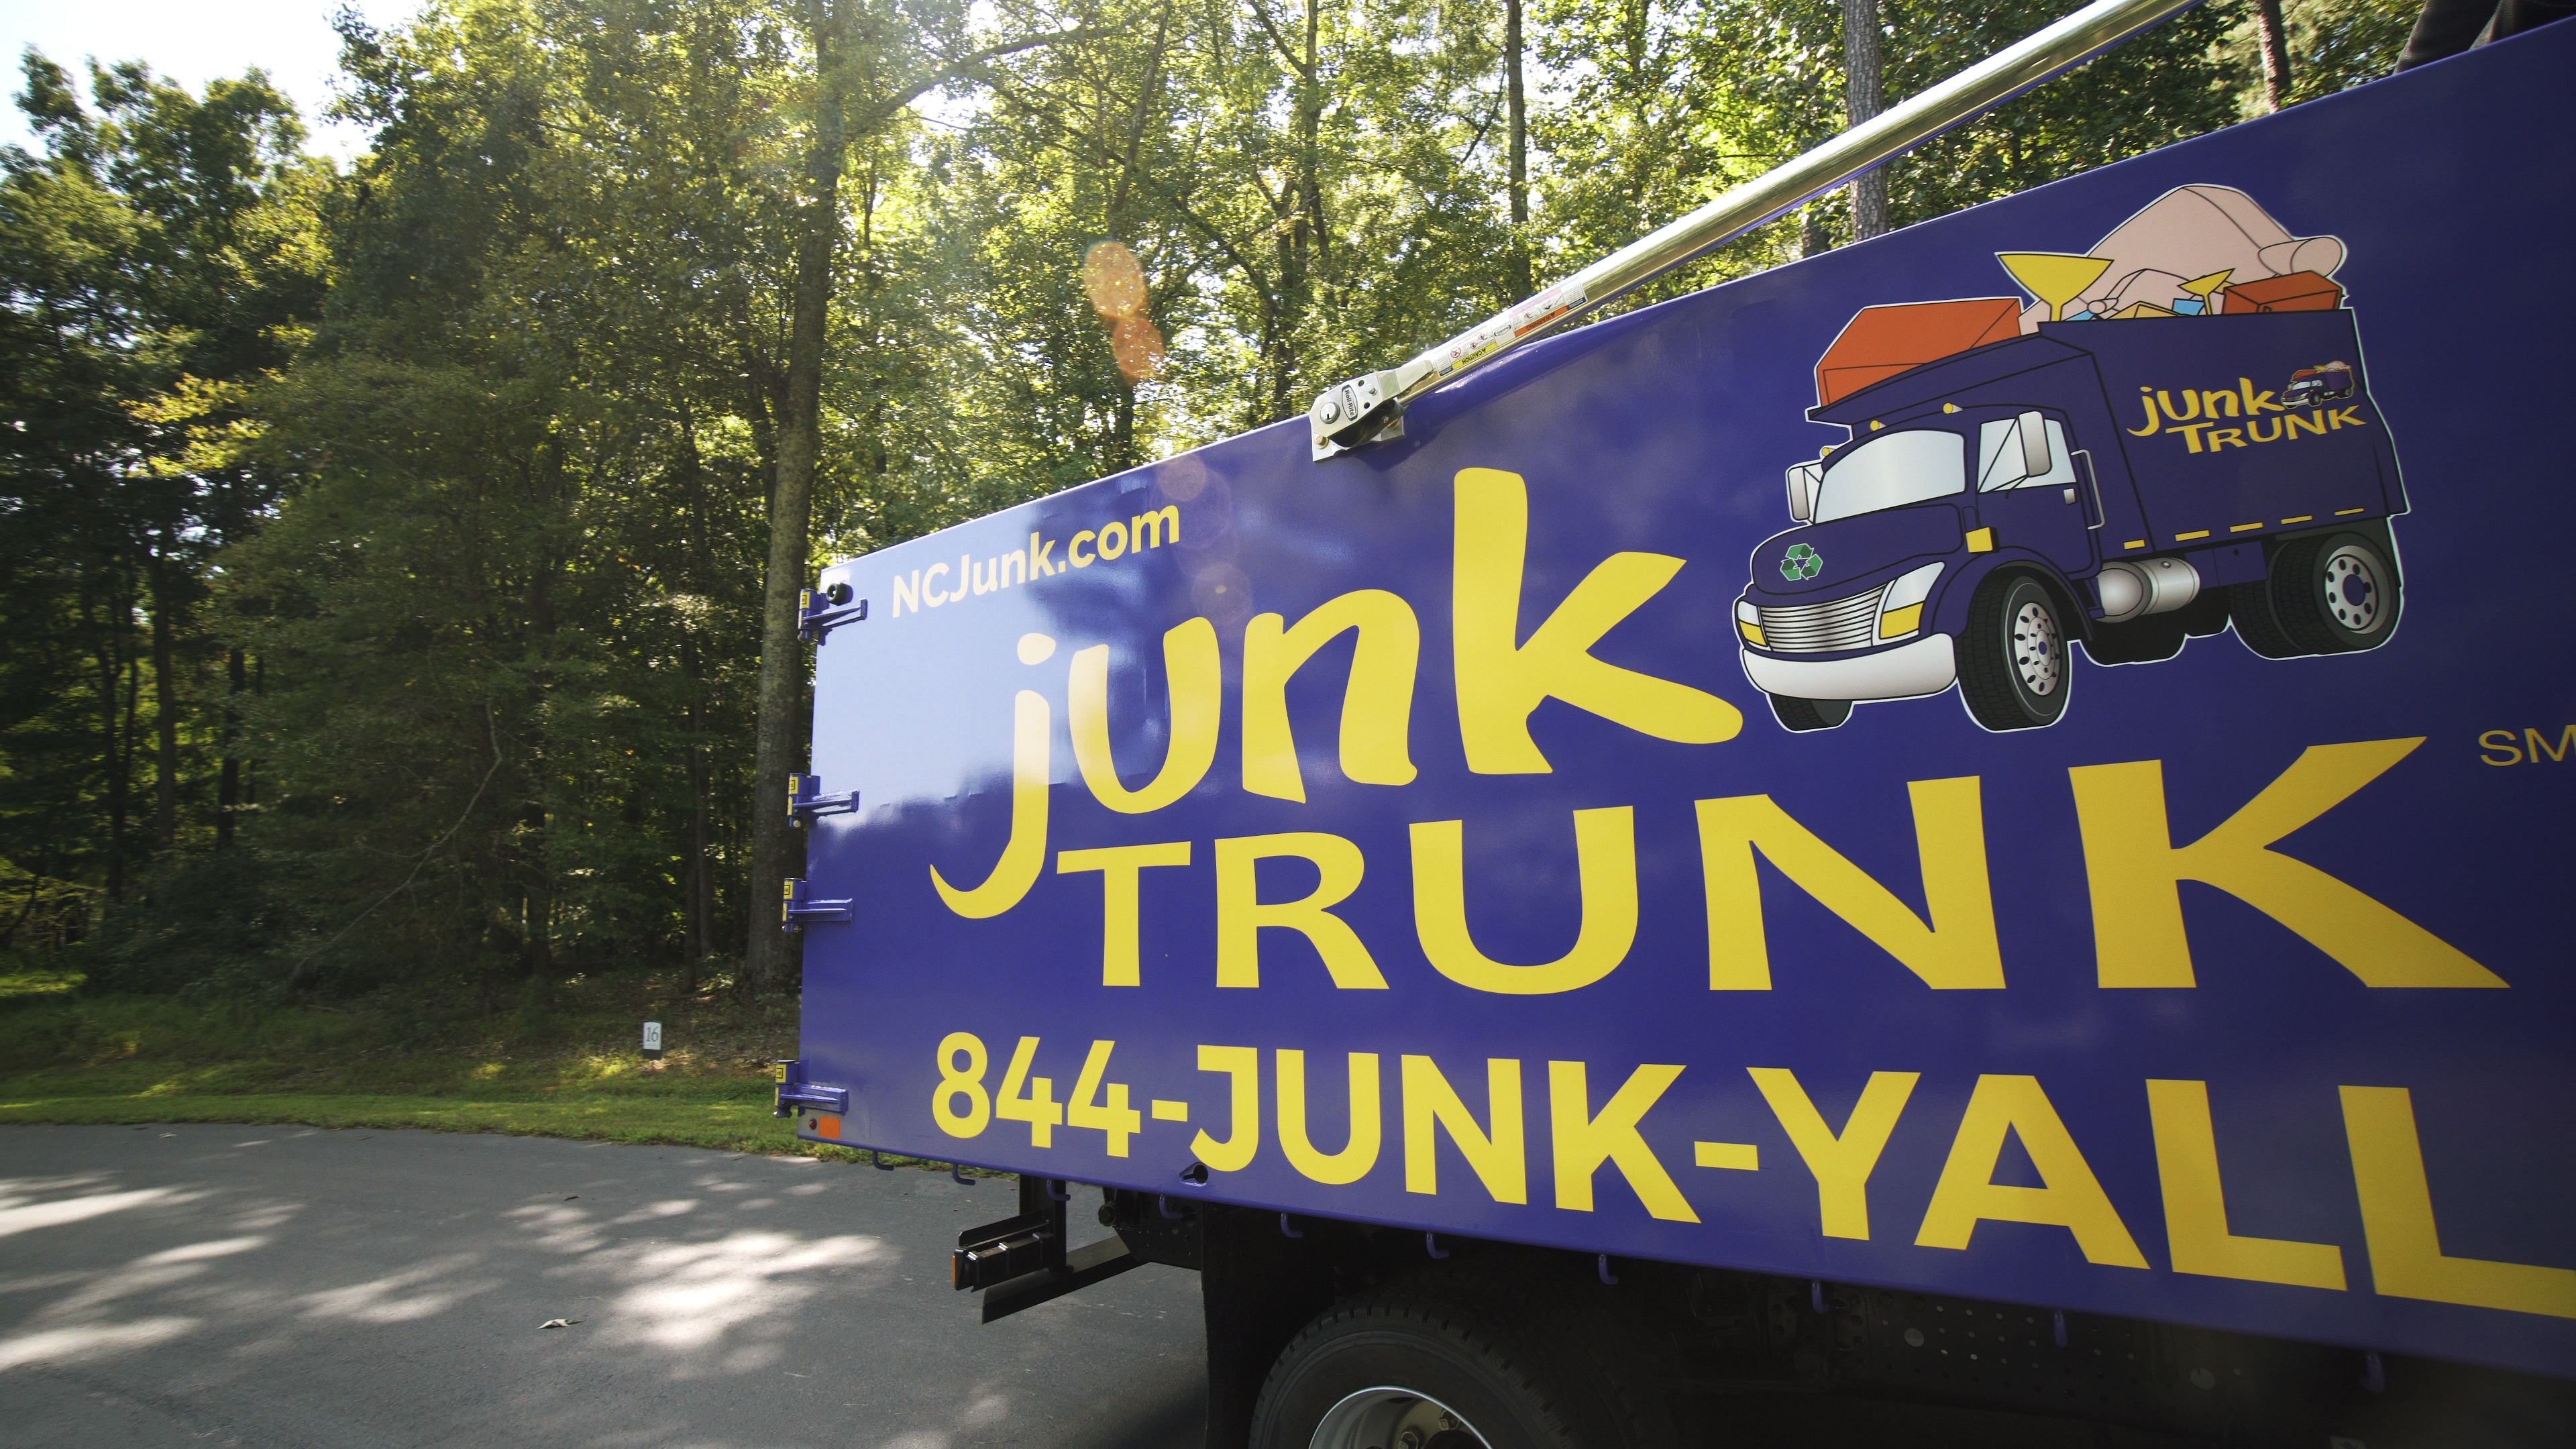 Junk Removal in Greenville NC Junk Trunk